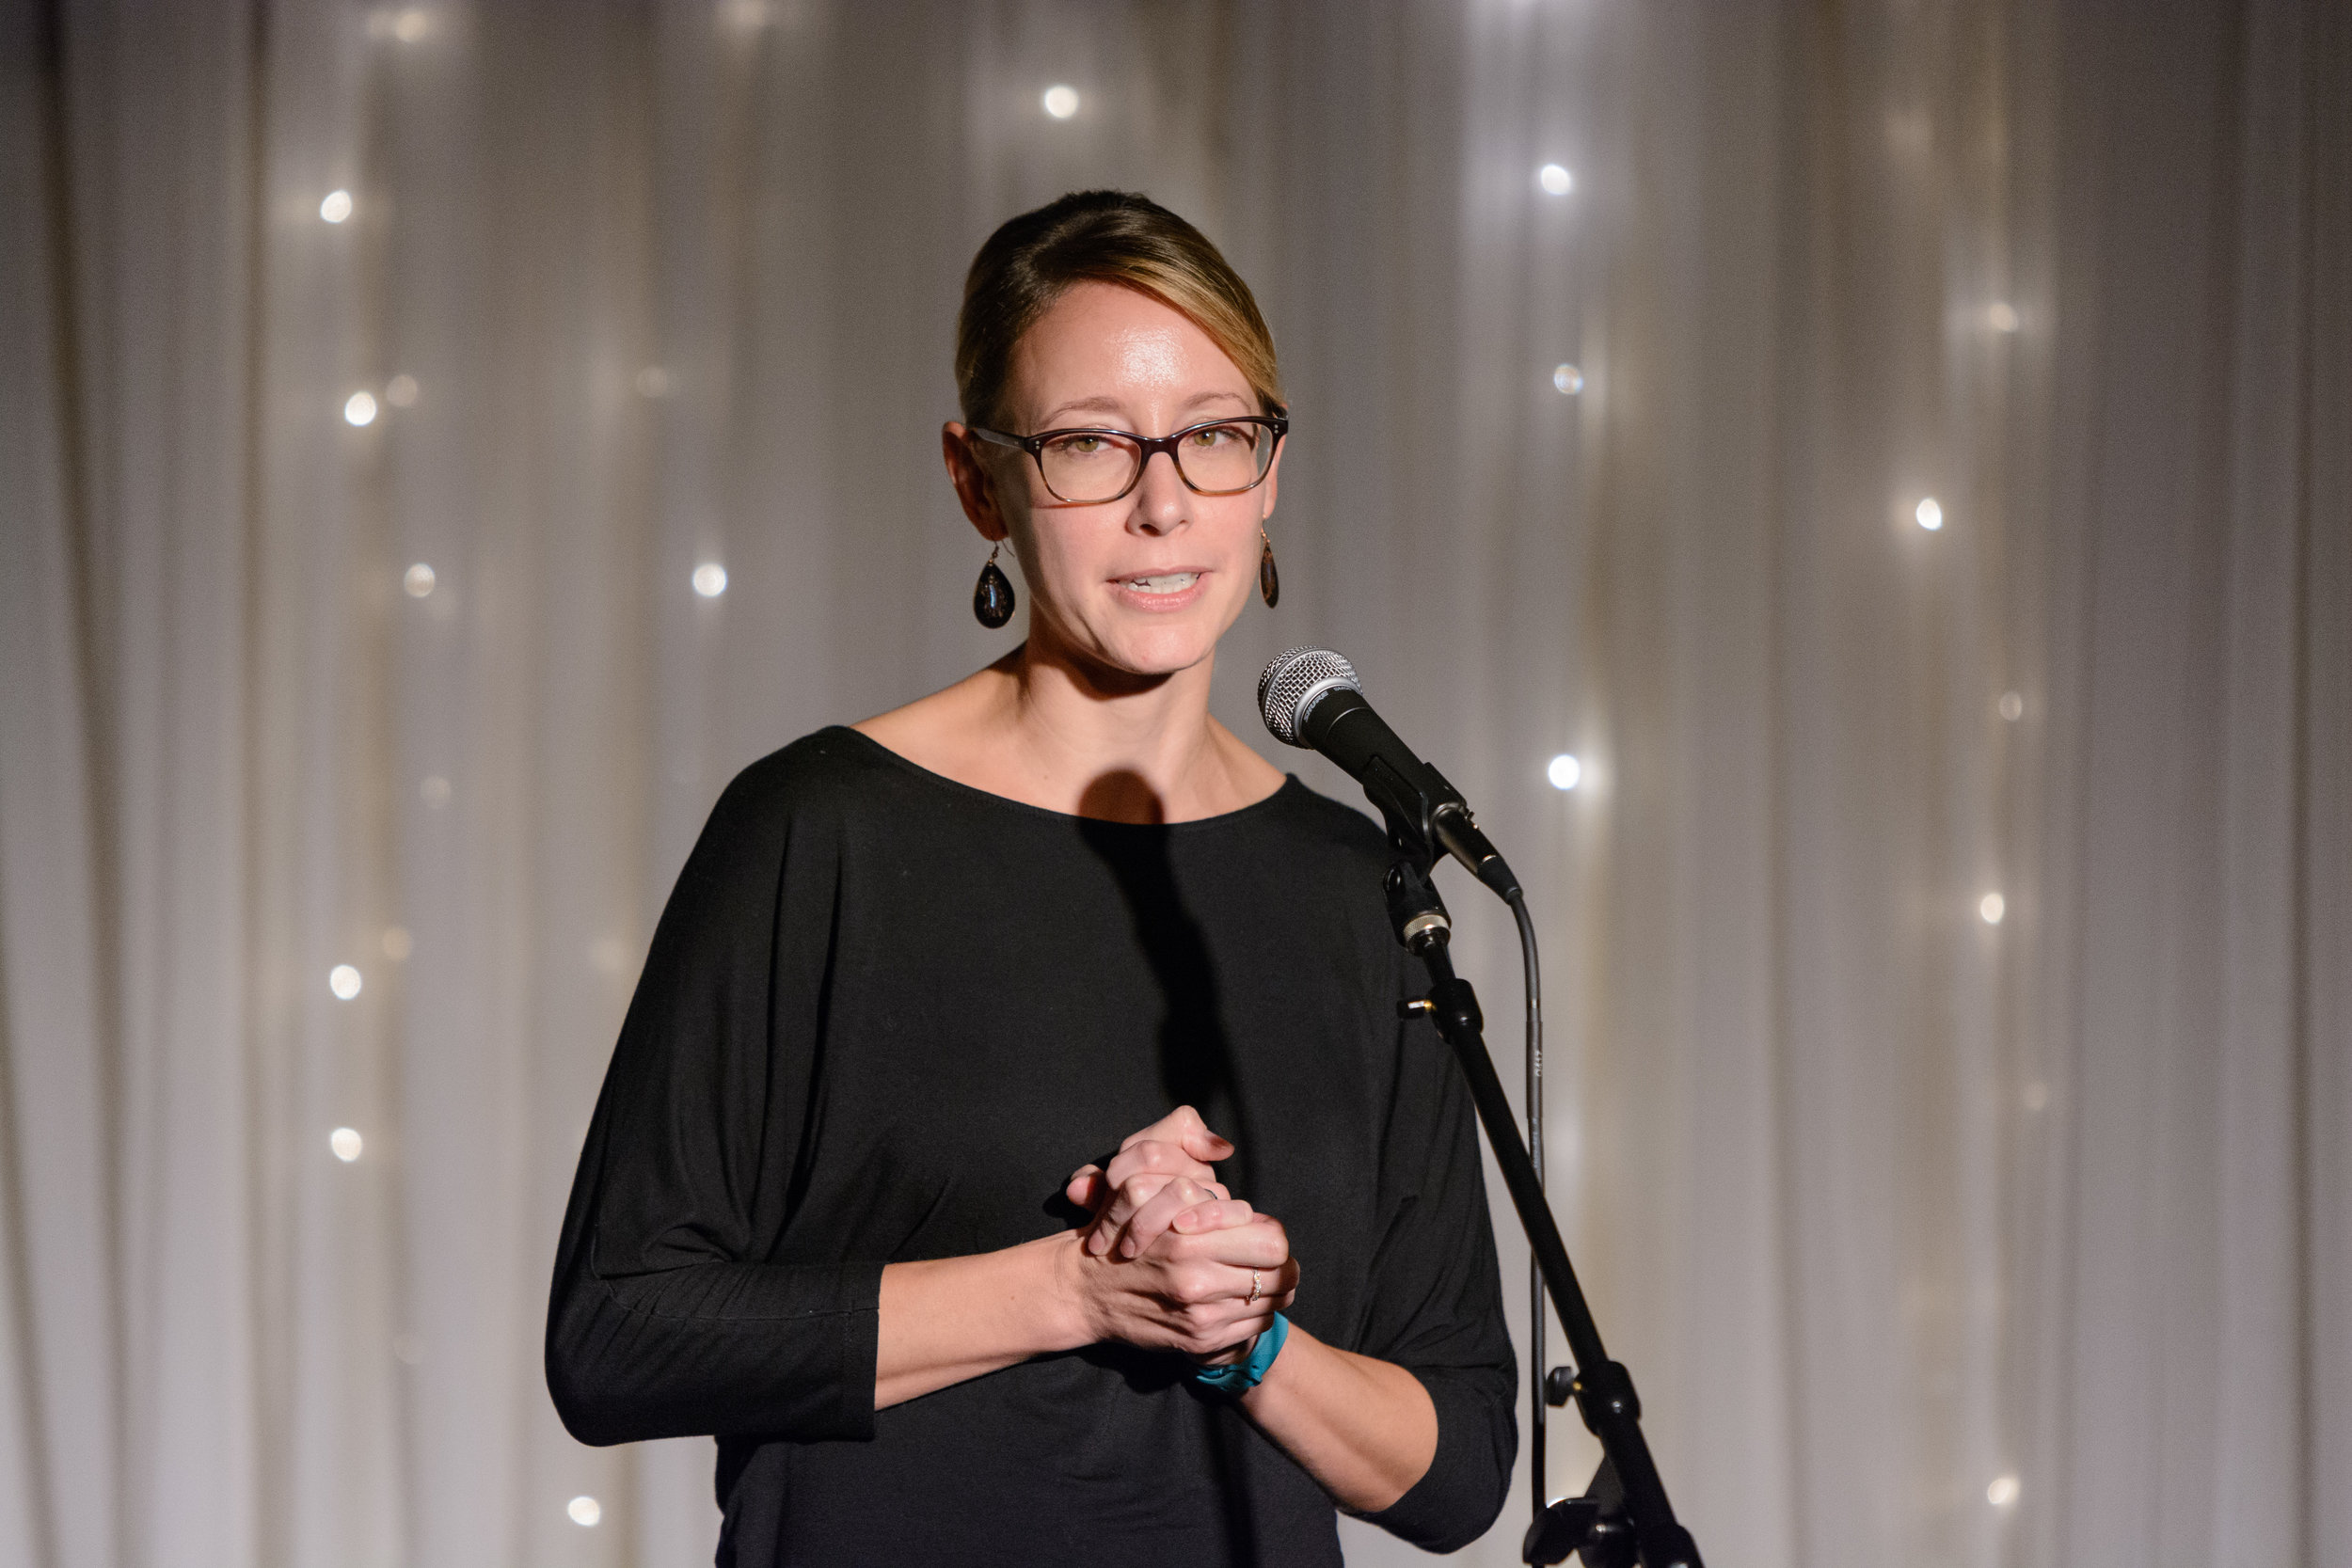 Sarah Fankhauser shares her story on the Story Collider stage at Highline Inn Ballroom in Atlanta, GA in October 2018. Photo by Rob Felt.